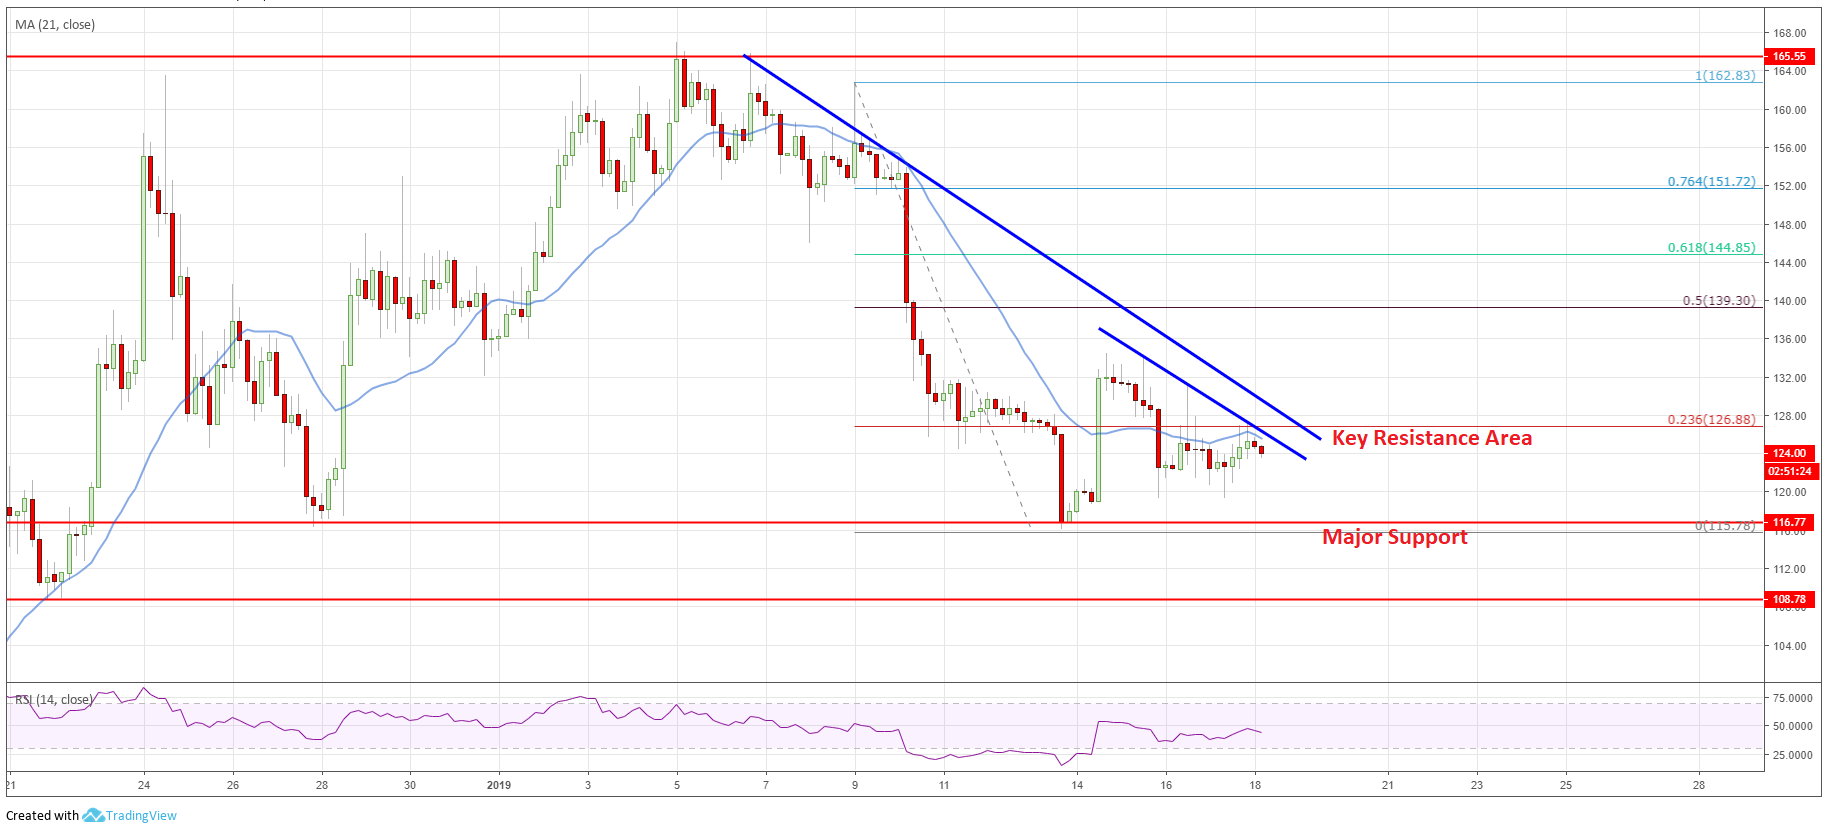 Eth price declined